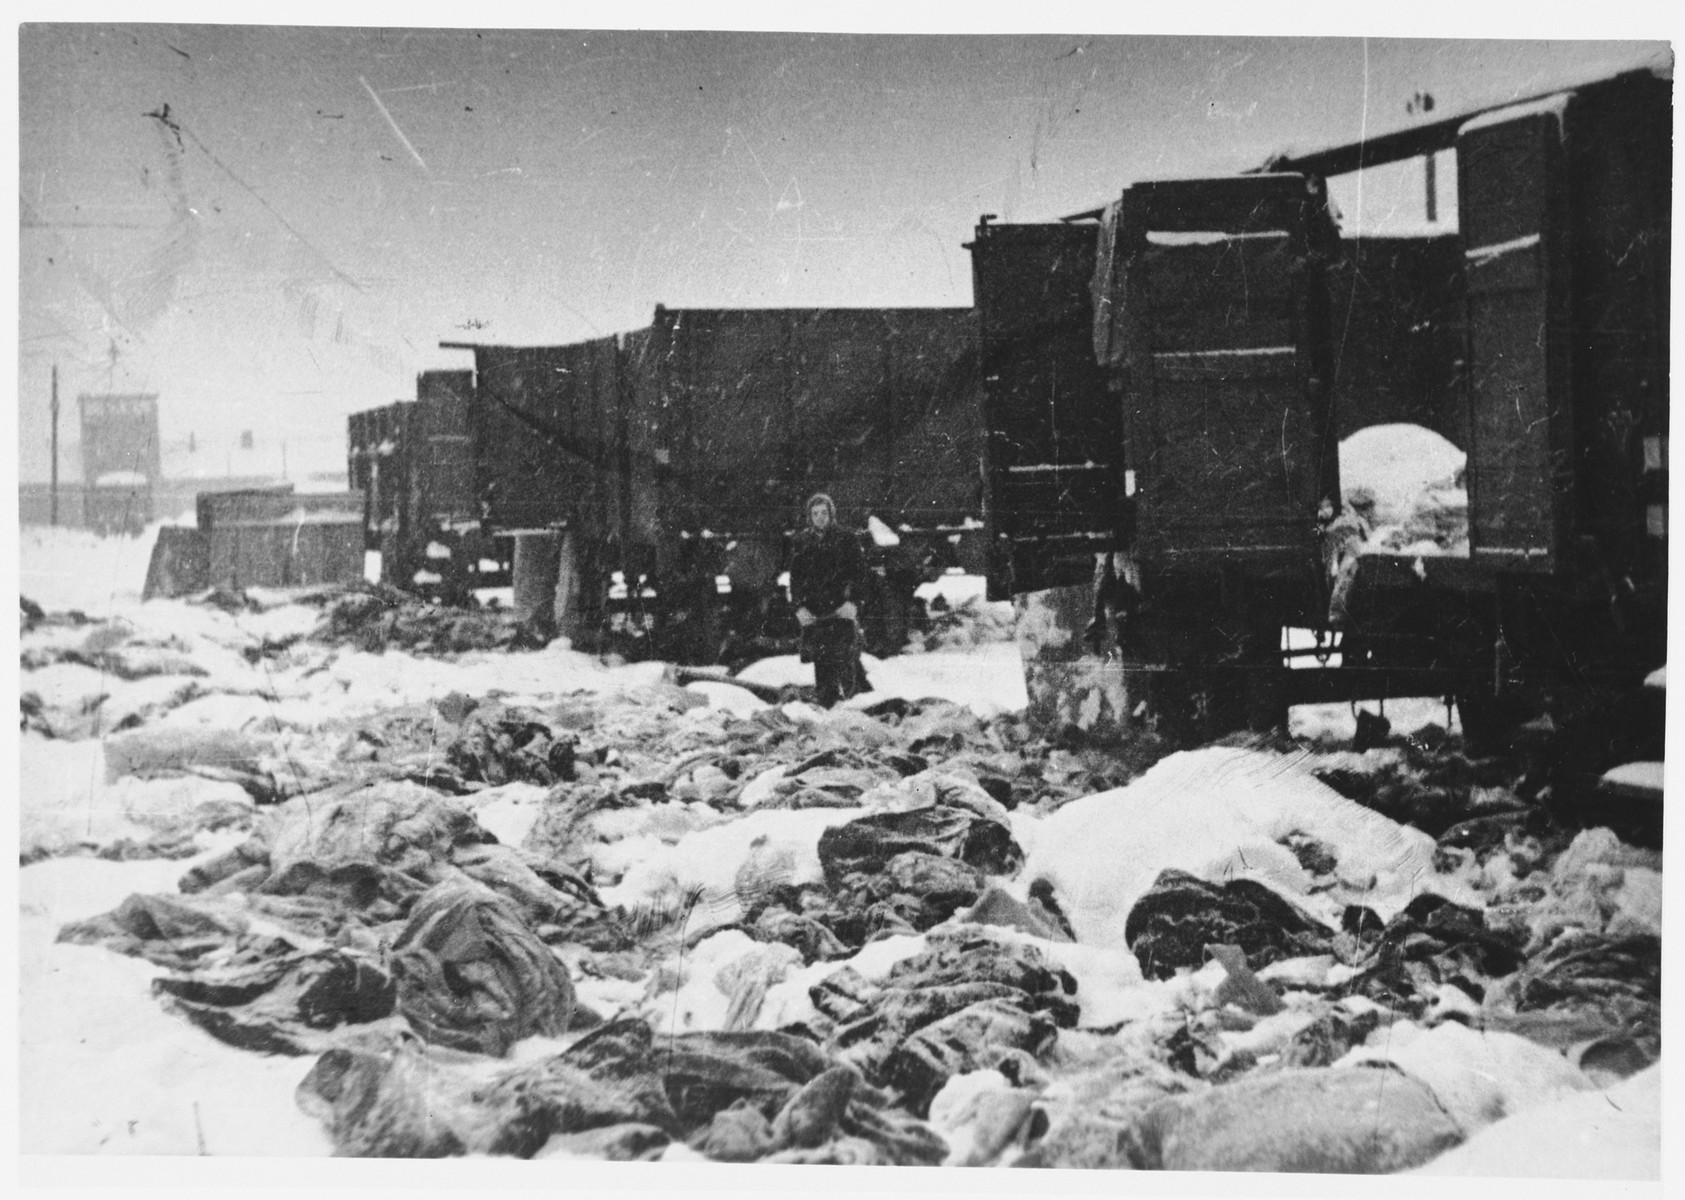 """A shipment of bedding, partially covered with snow, lies strewn next to an abandoned train in Auschwitz-Birkenau immediately after the liberation.  Original caption:  """"The shipment of bedding (taken from the prisoners) which did not leave for the Reich."""""""